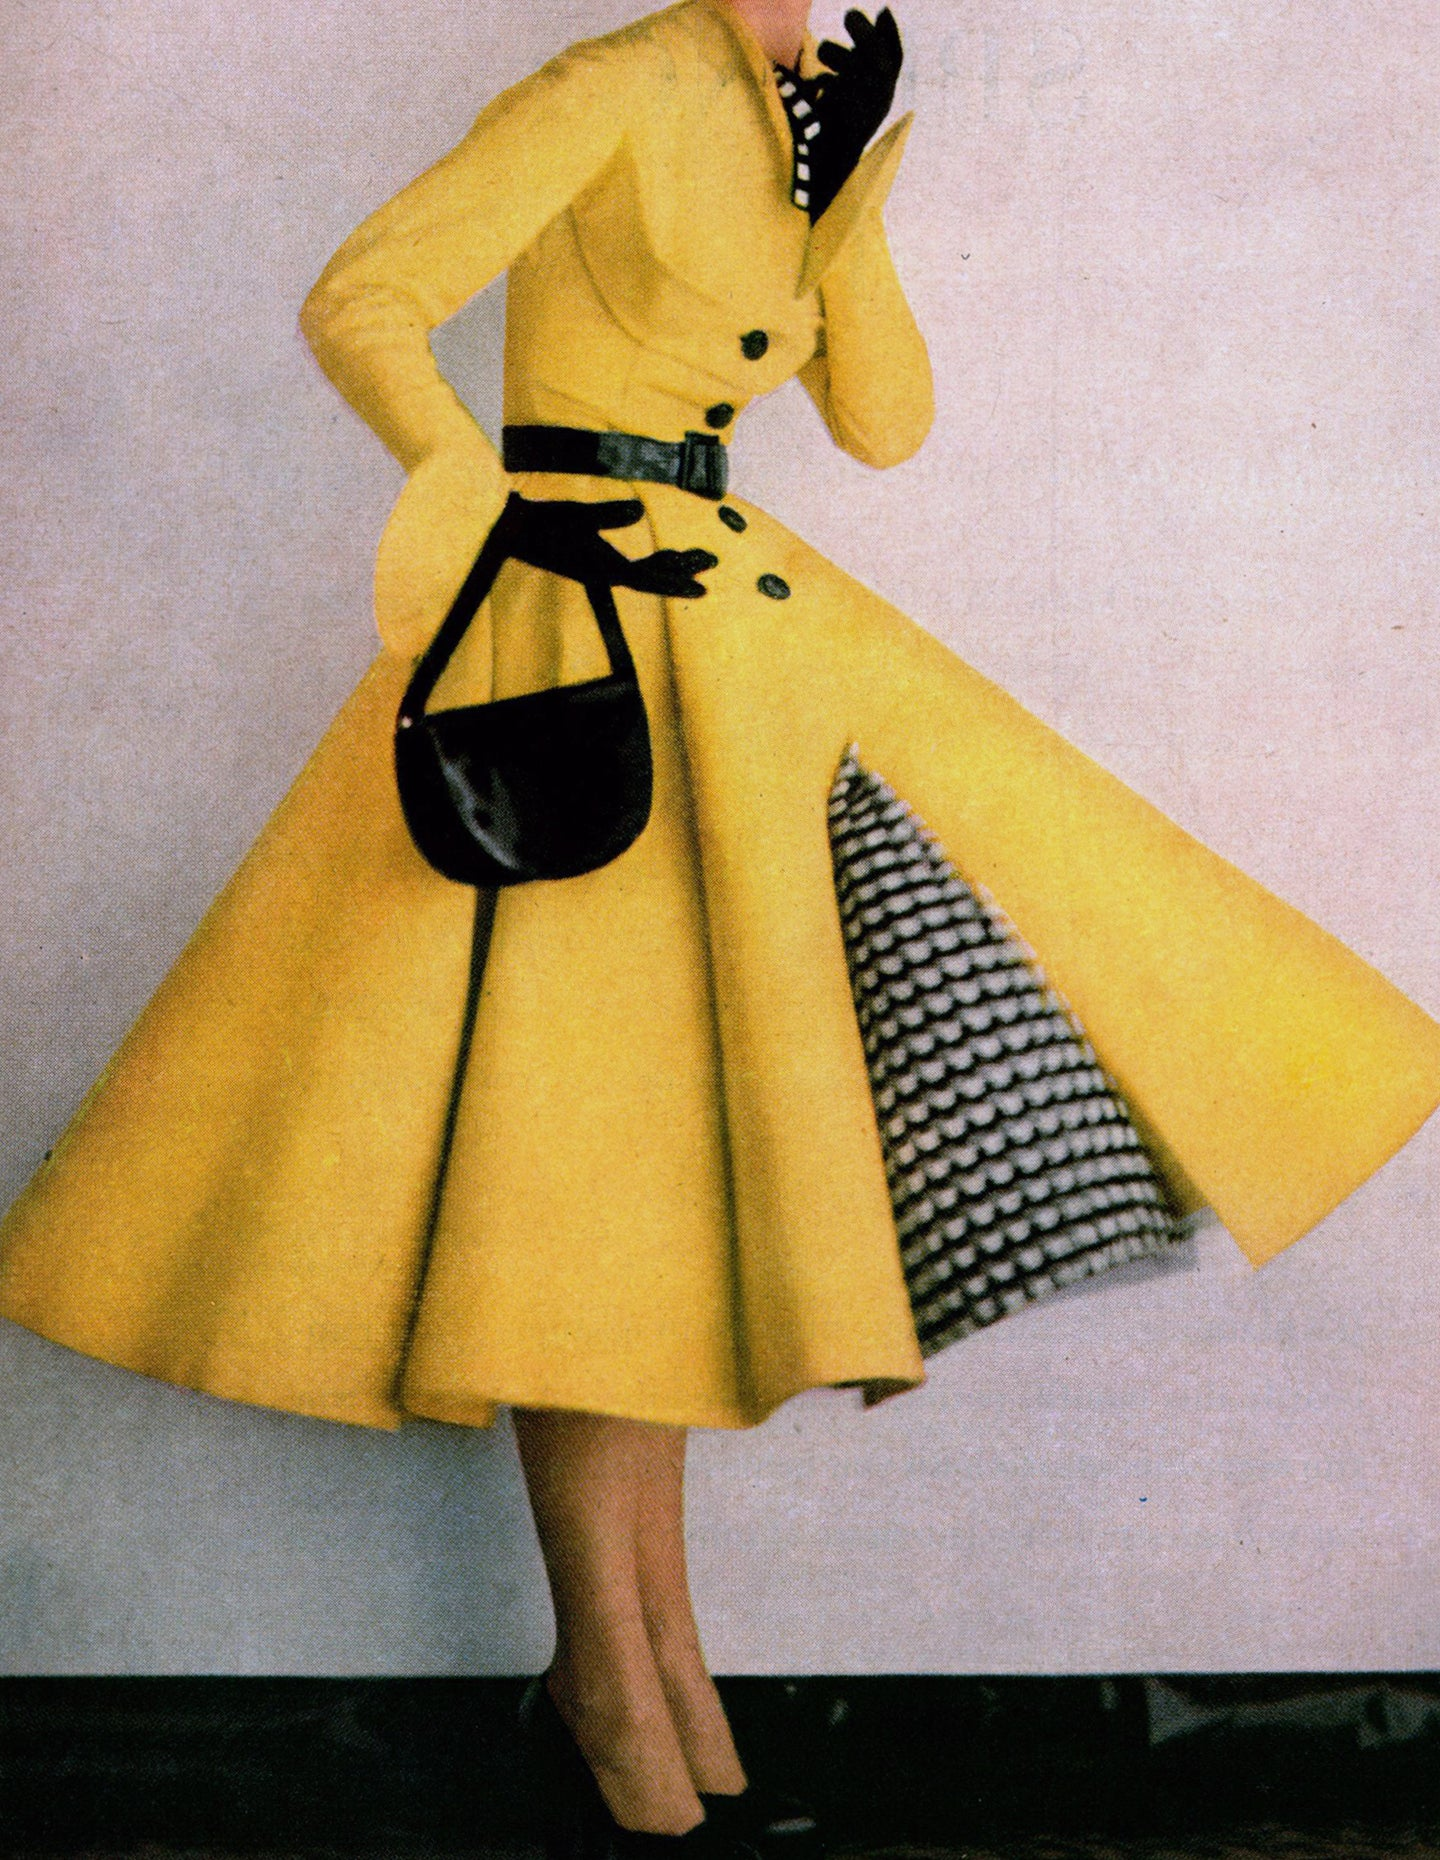 Charm, March 1952 photographer William Helburn